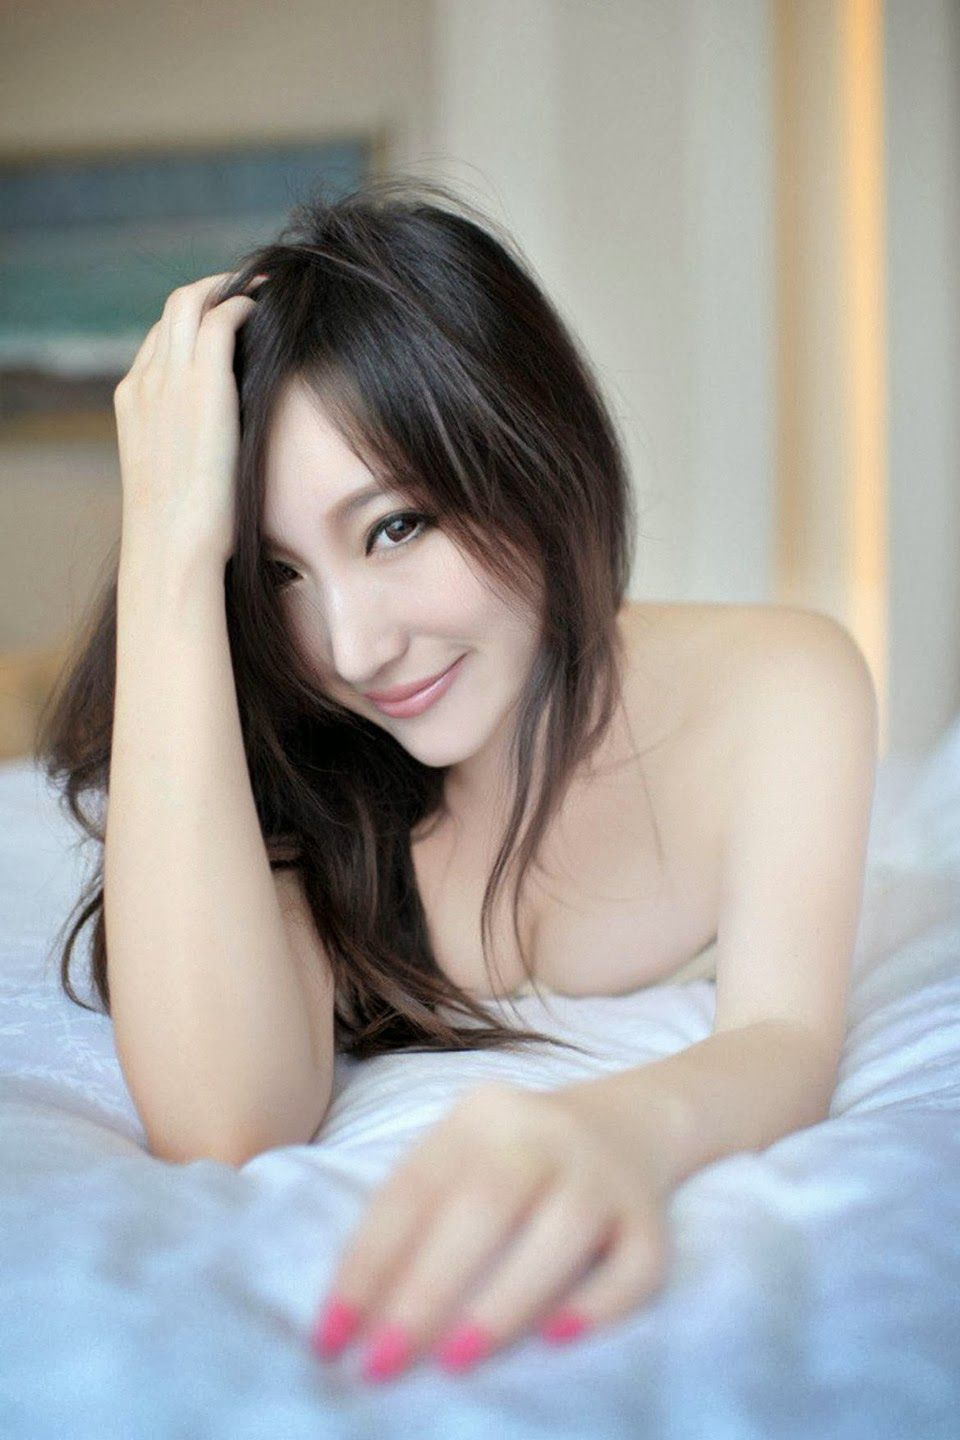 bigboob china sexy girl hot